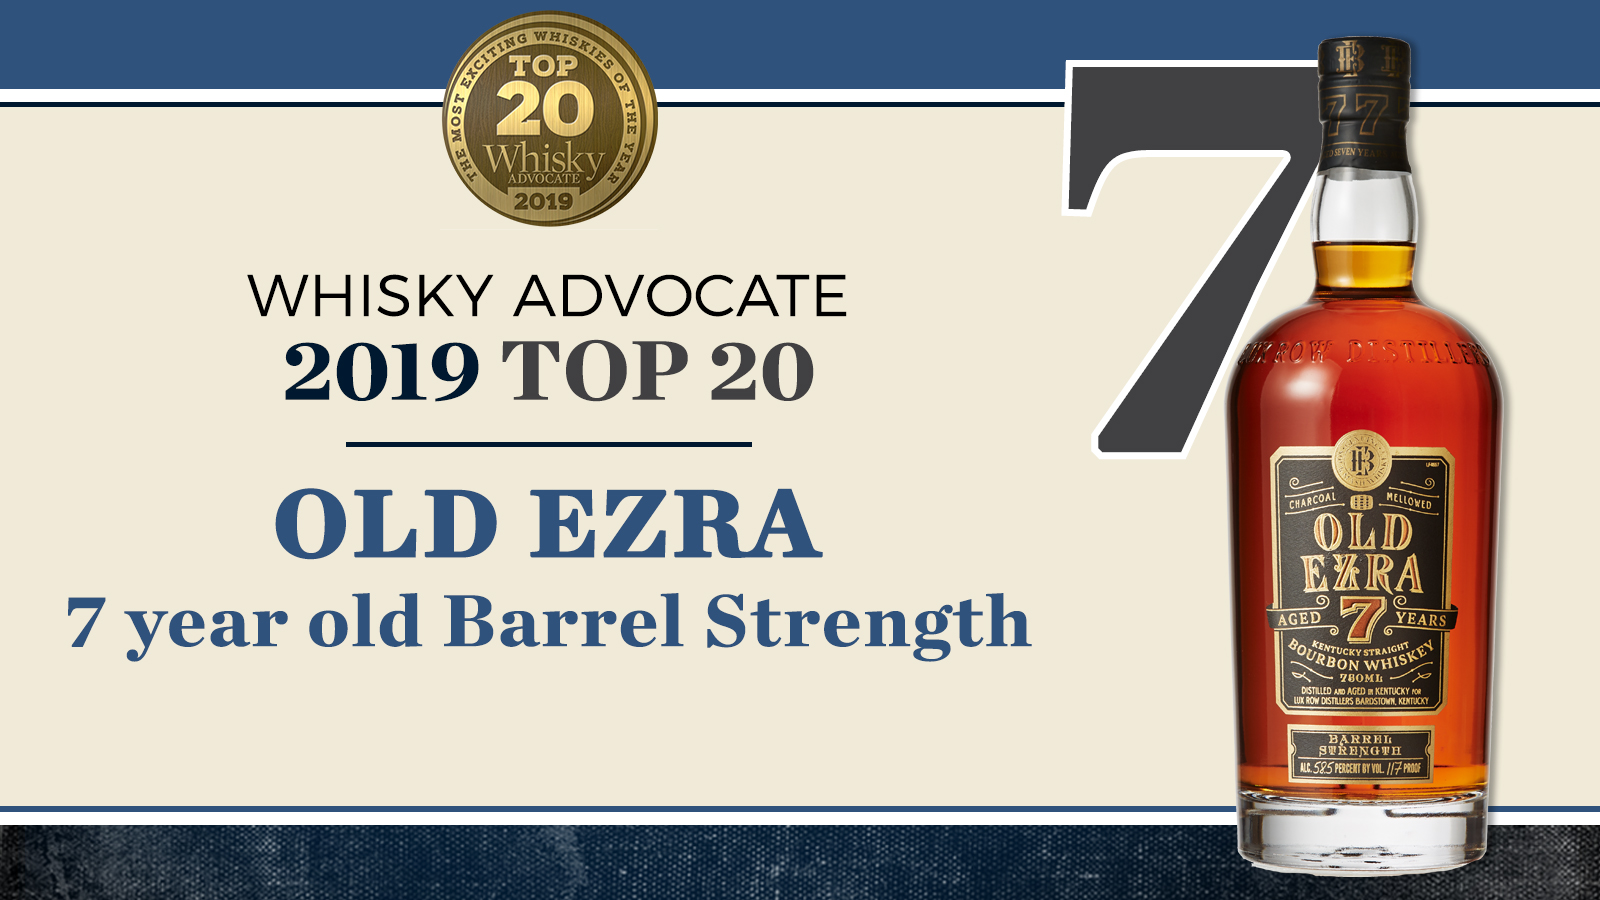 Old Ezra 7 year old Barrel Strength - Whisky Advocate